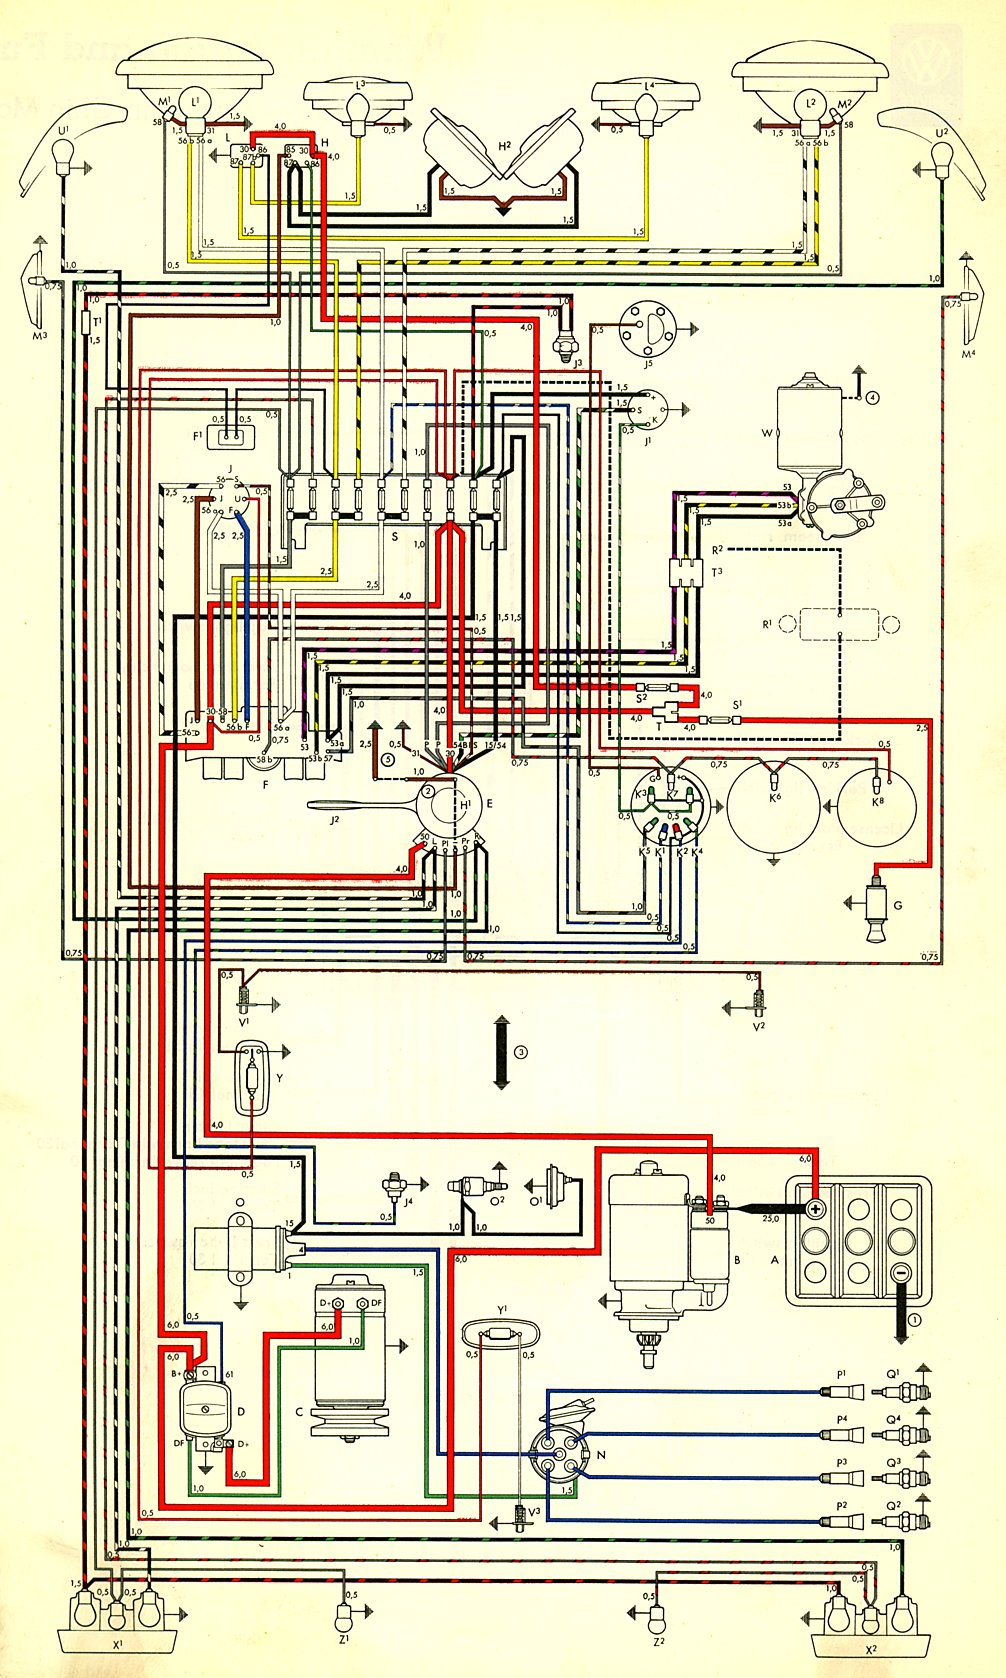 thesamba com type 3 wiring diagrams VW Voltage Regulator Wiring Diagram Vw Type 3 Wiring Diagram #7